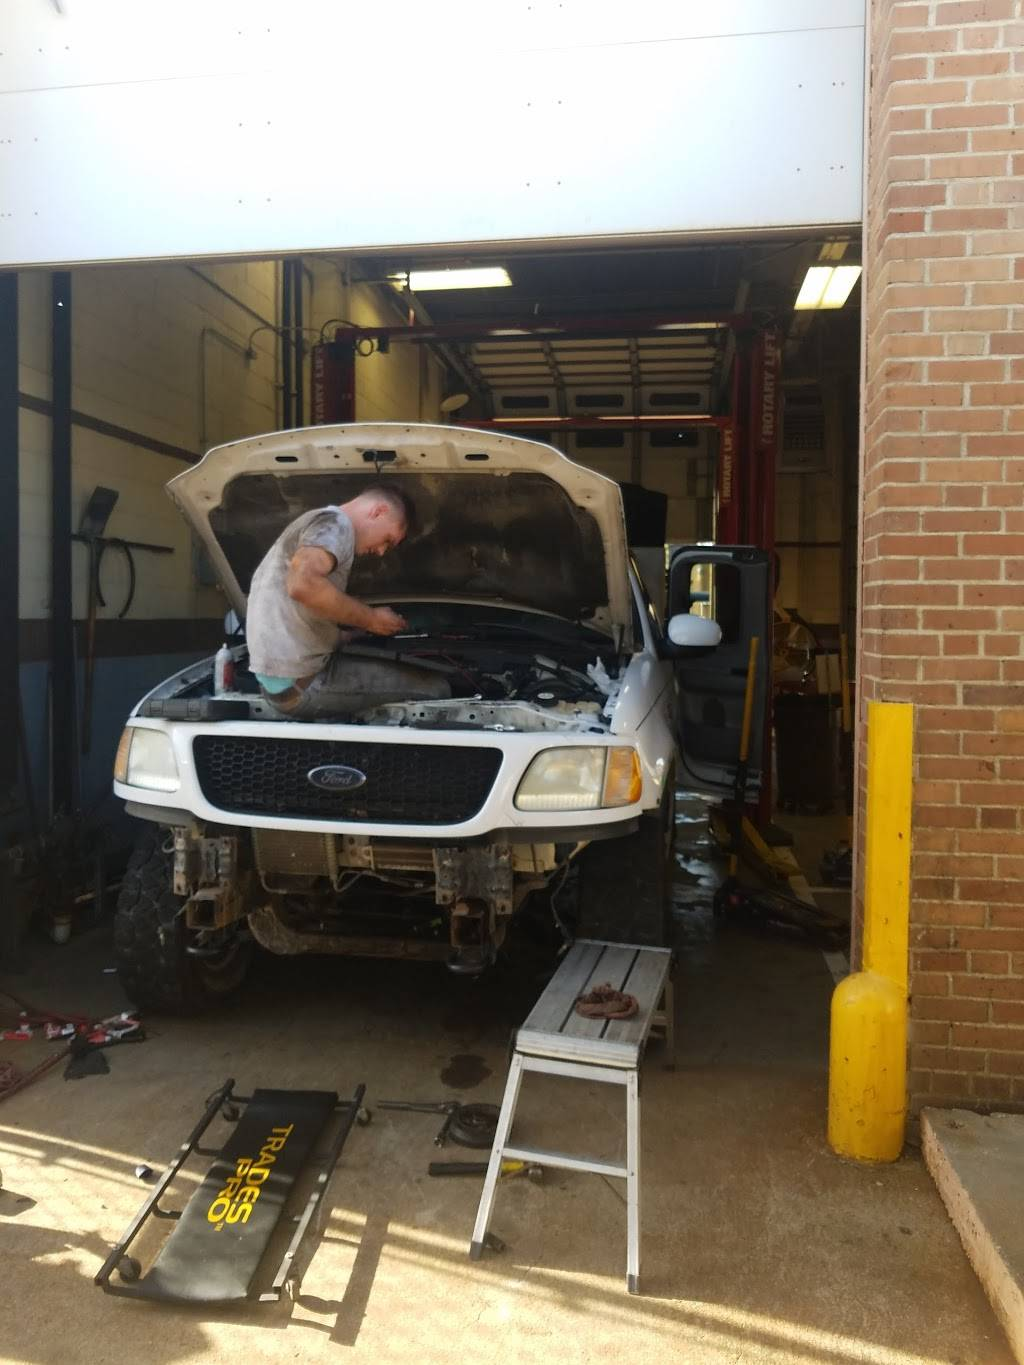 Auto Skills Center - car repair  | Photo 1 of 3 | Address: Belle Chasse, LA 70037, USA | Phone: (504) 678-3448